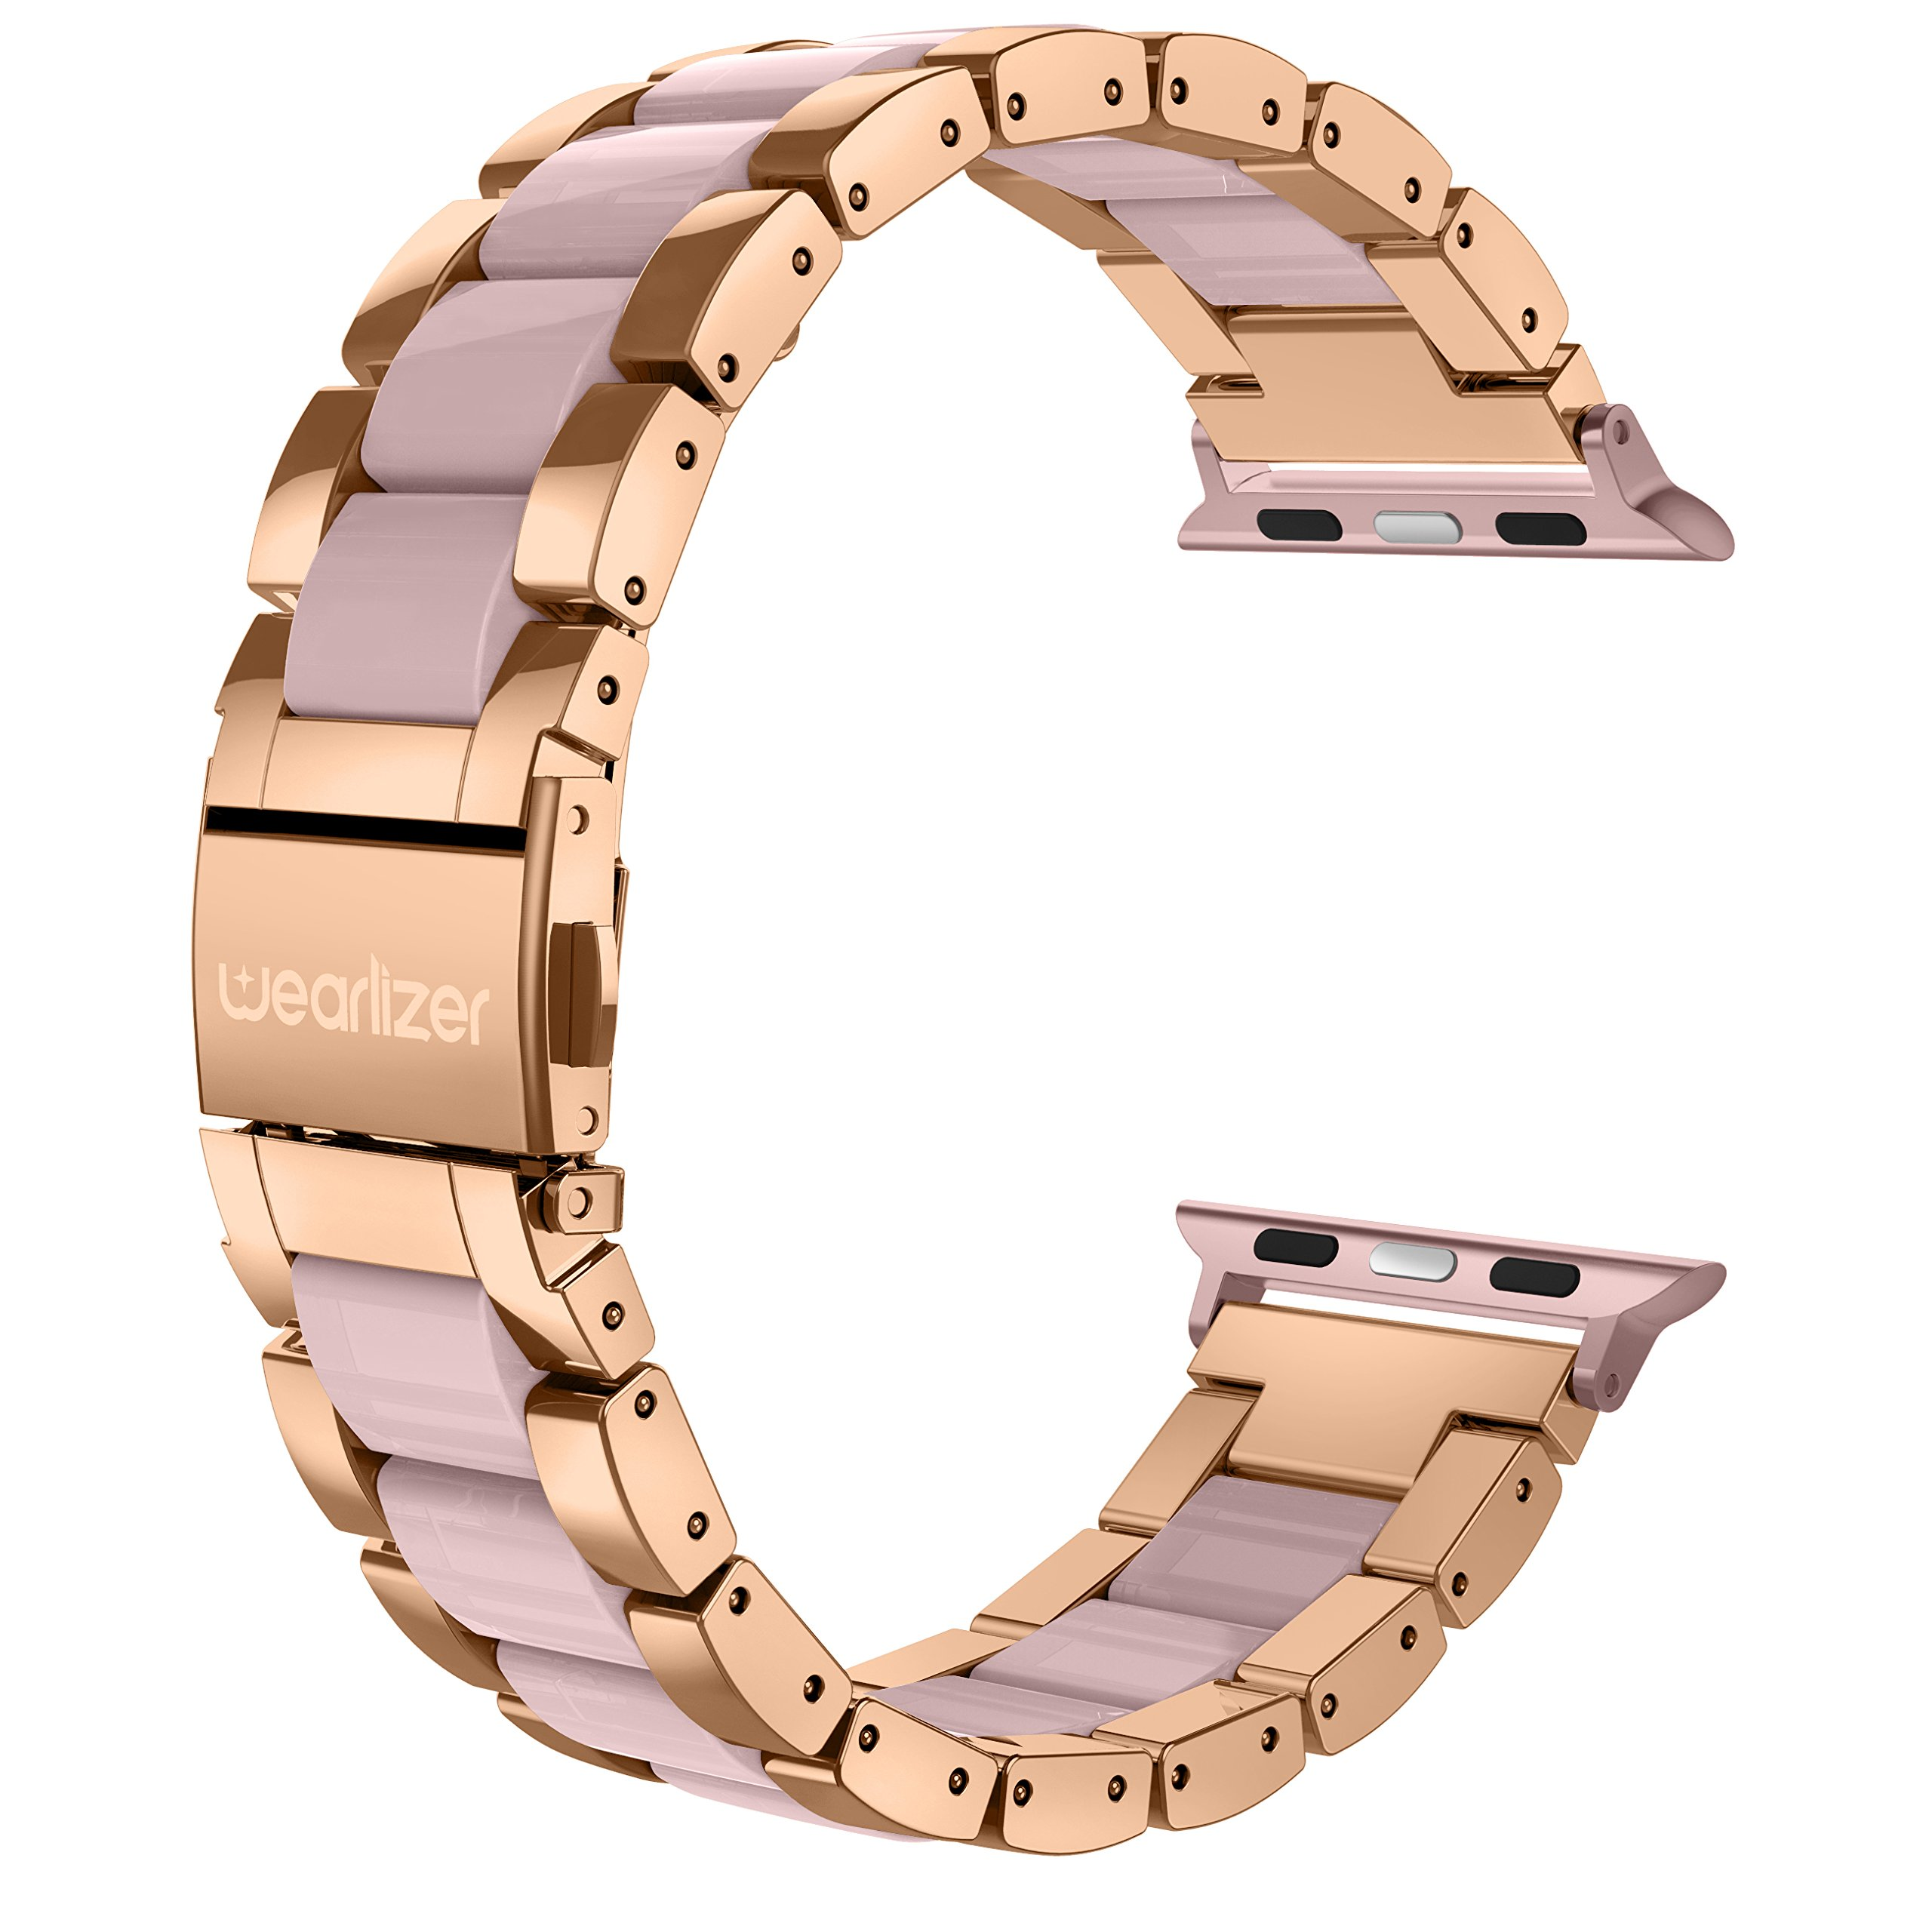 For Apple Watch Band 38mm, Wearlizer Fashion Metal Wristbands Replacement iWatch Stainless Steel Strap for Apple Watch Series 3, Series 2, Series 1, Sport, Edition-38mm Dark Rose Gold + Pink